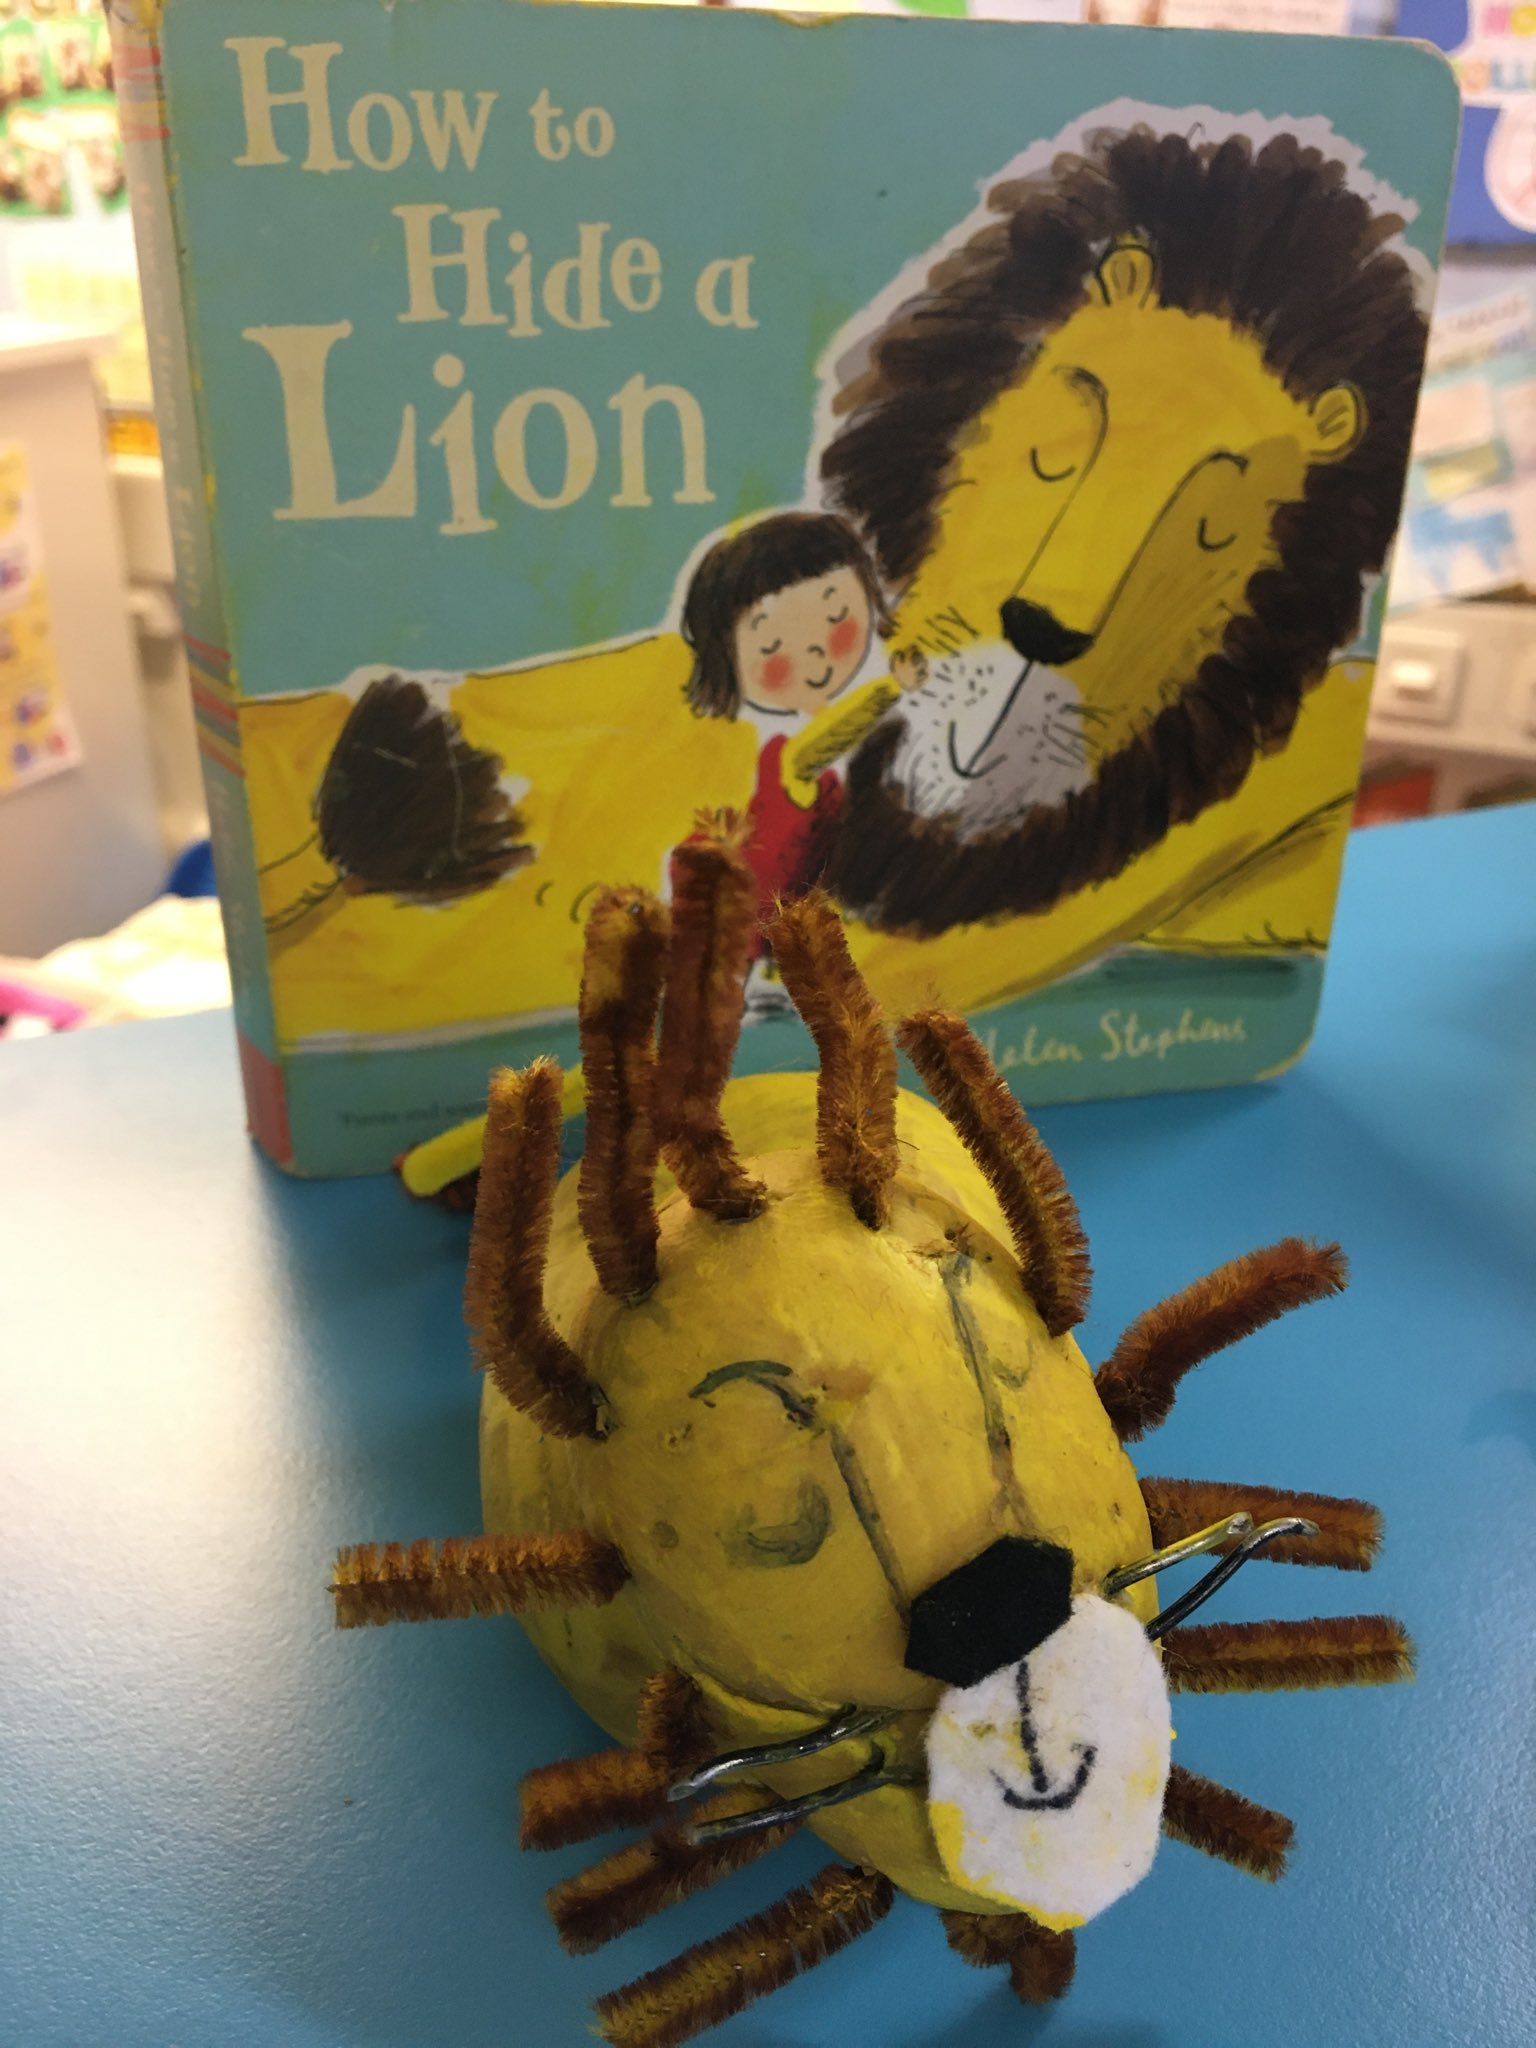 How to Hide a Lion by Helen Stephens (made by Westmeads Infant School)